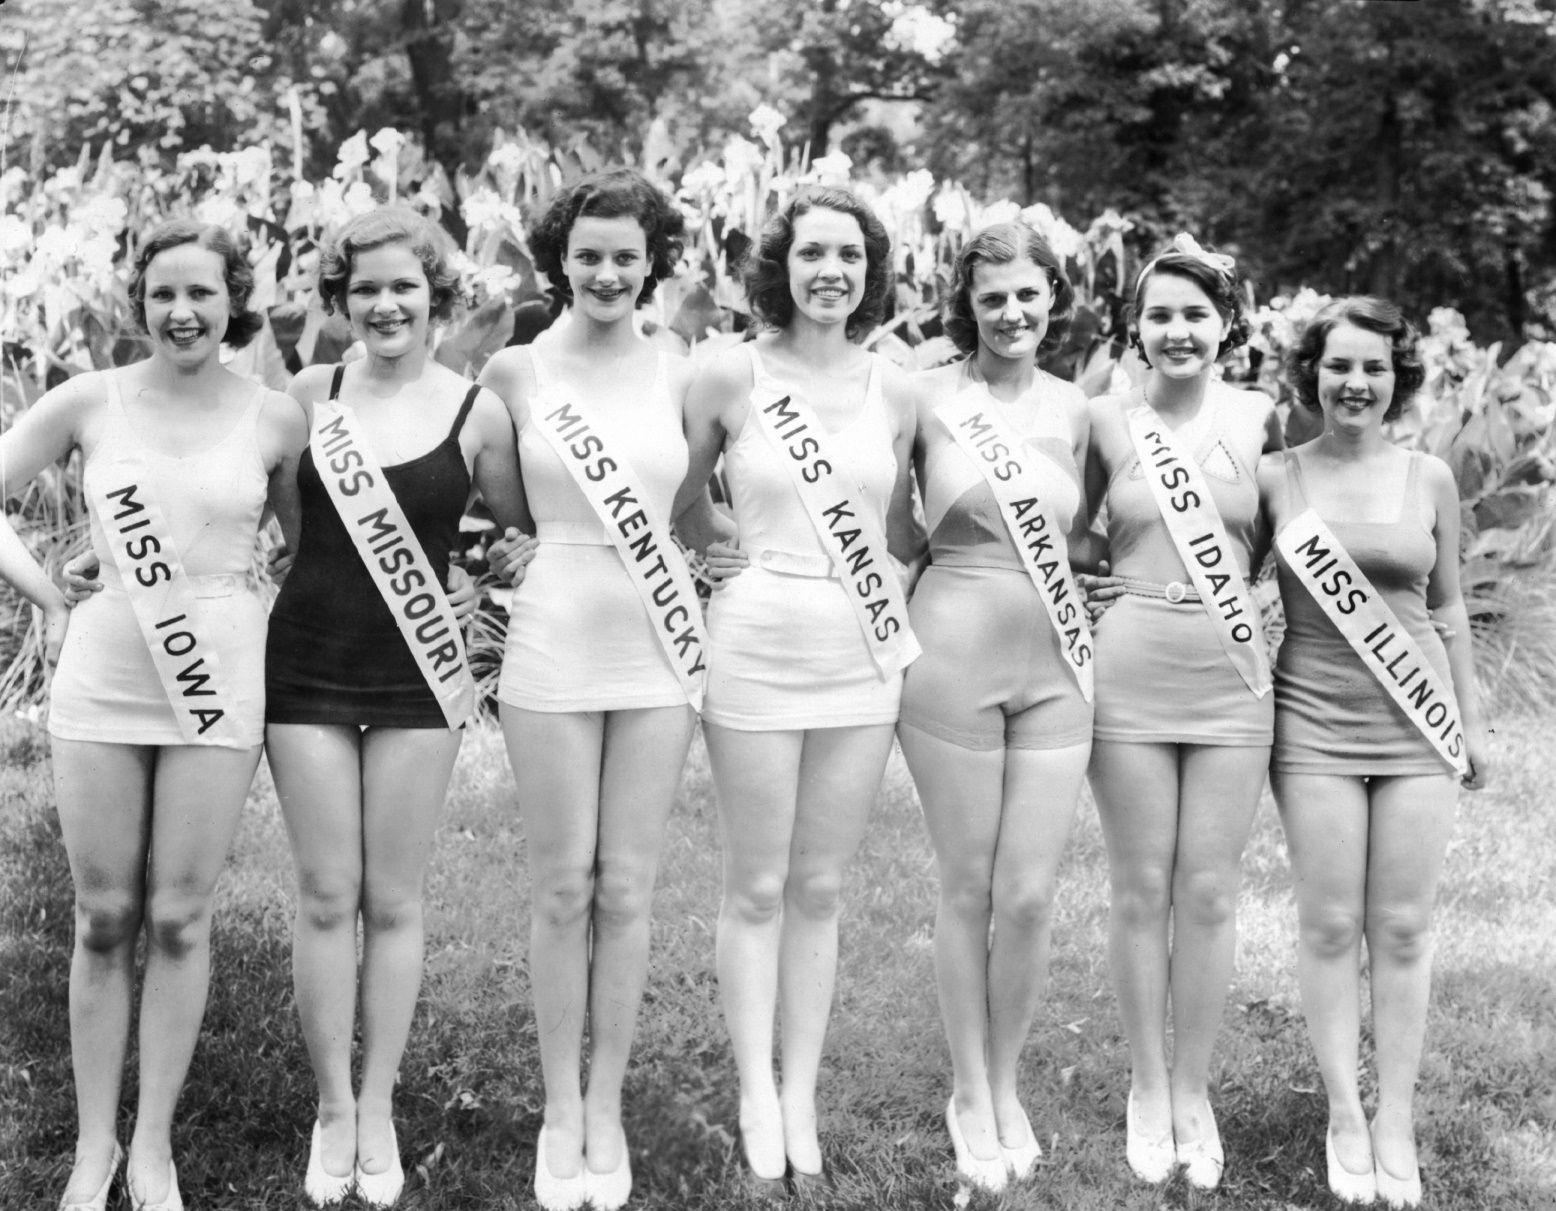 Former Miss New York City | The PageantFile